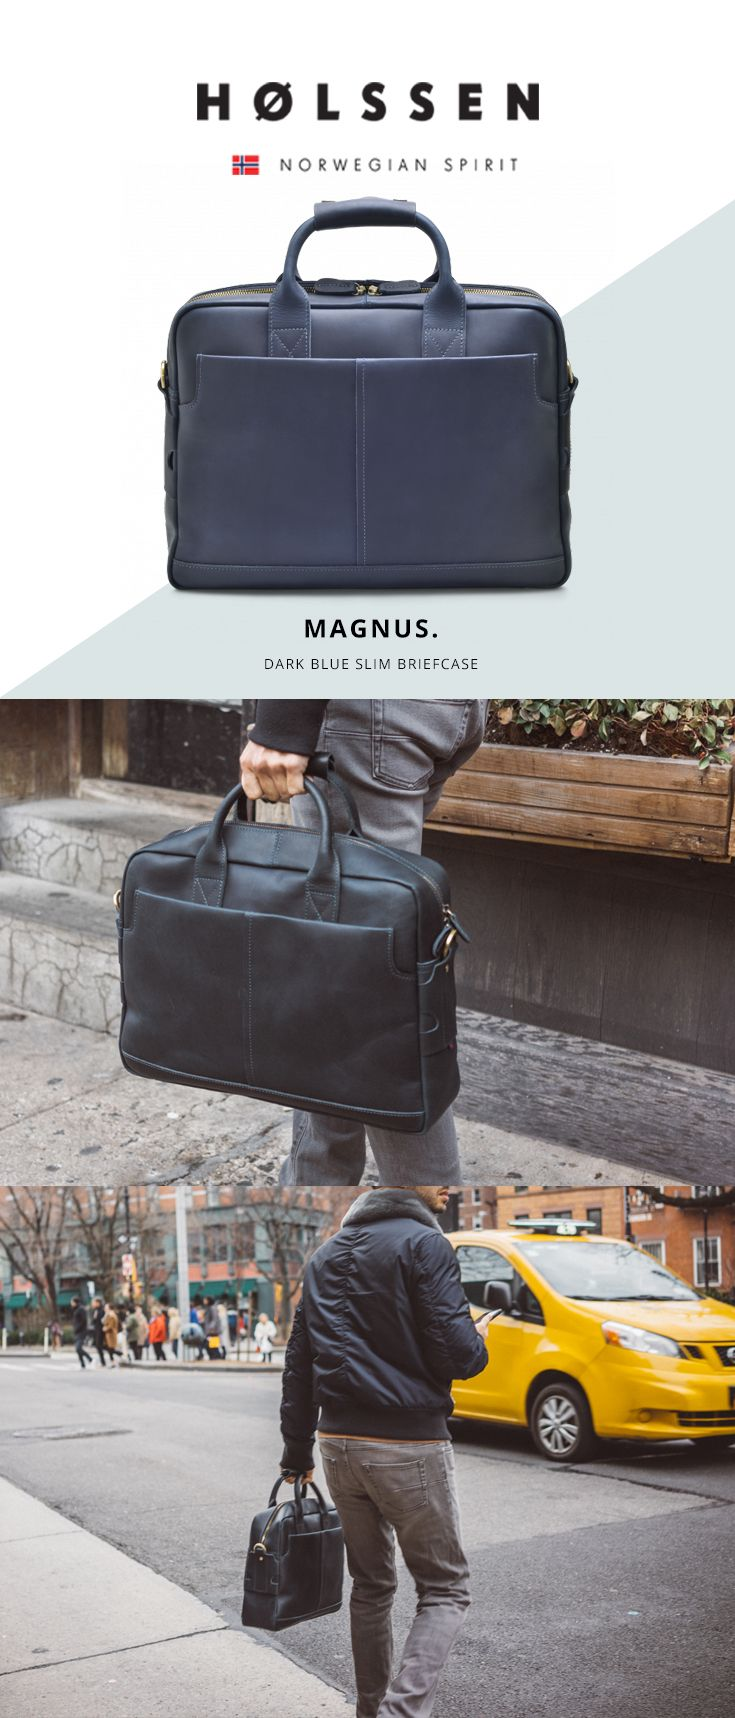 Our Magnus Briefcase is a structured slim briefcase with rugged good looks that only gets better with time. This bag features a leather shoulder strap that allows it to be carried like a messenger bag.